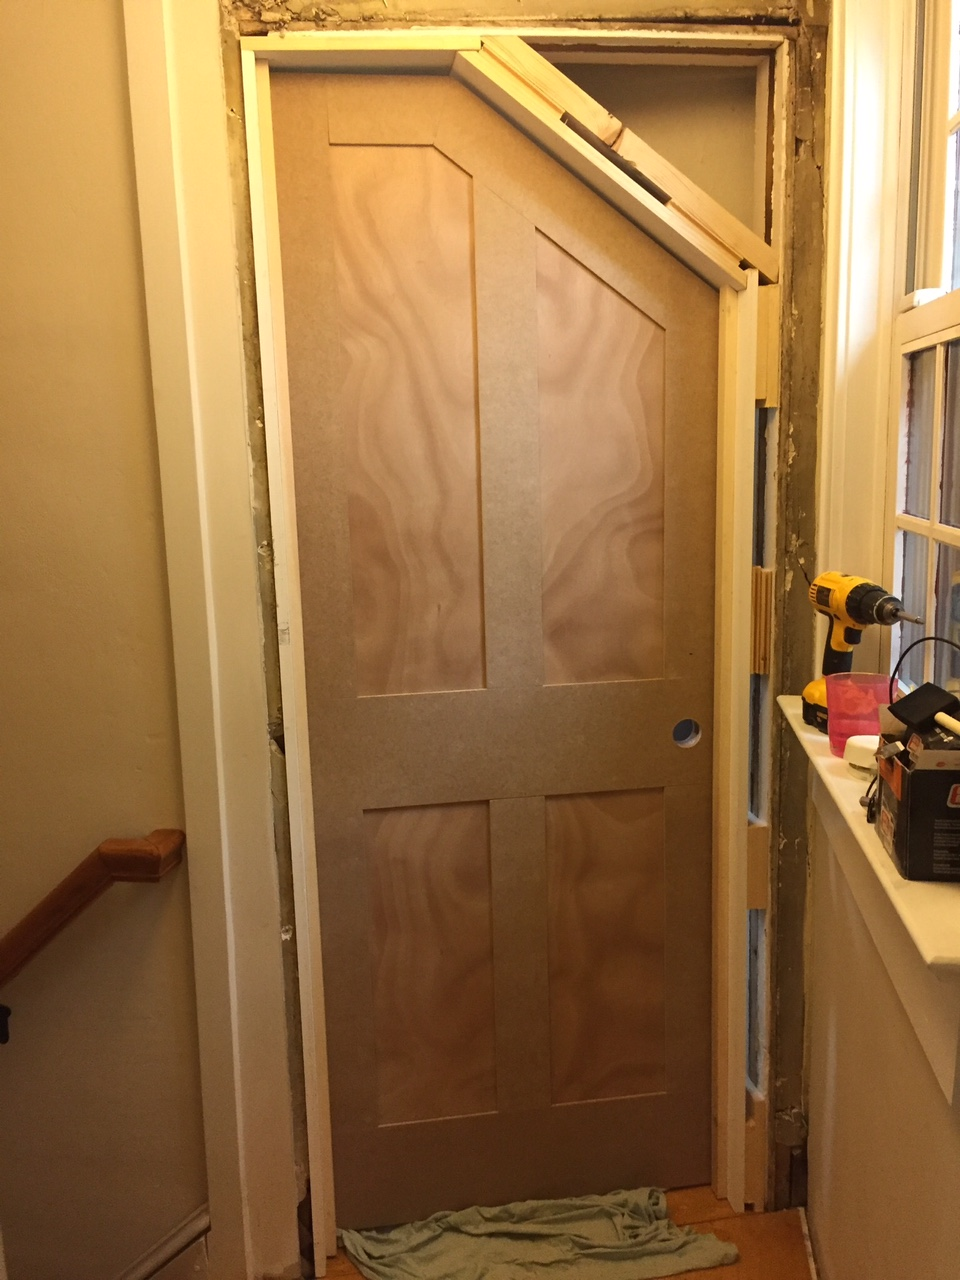 How to build an angled door